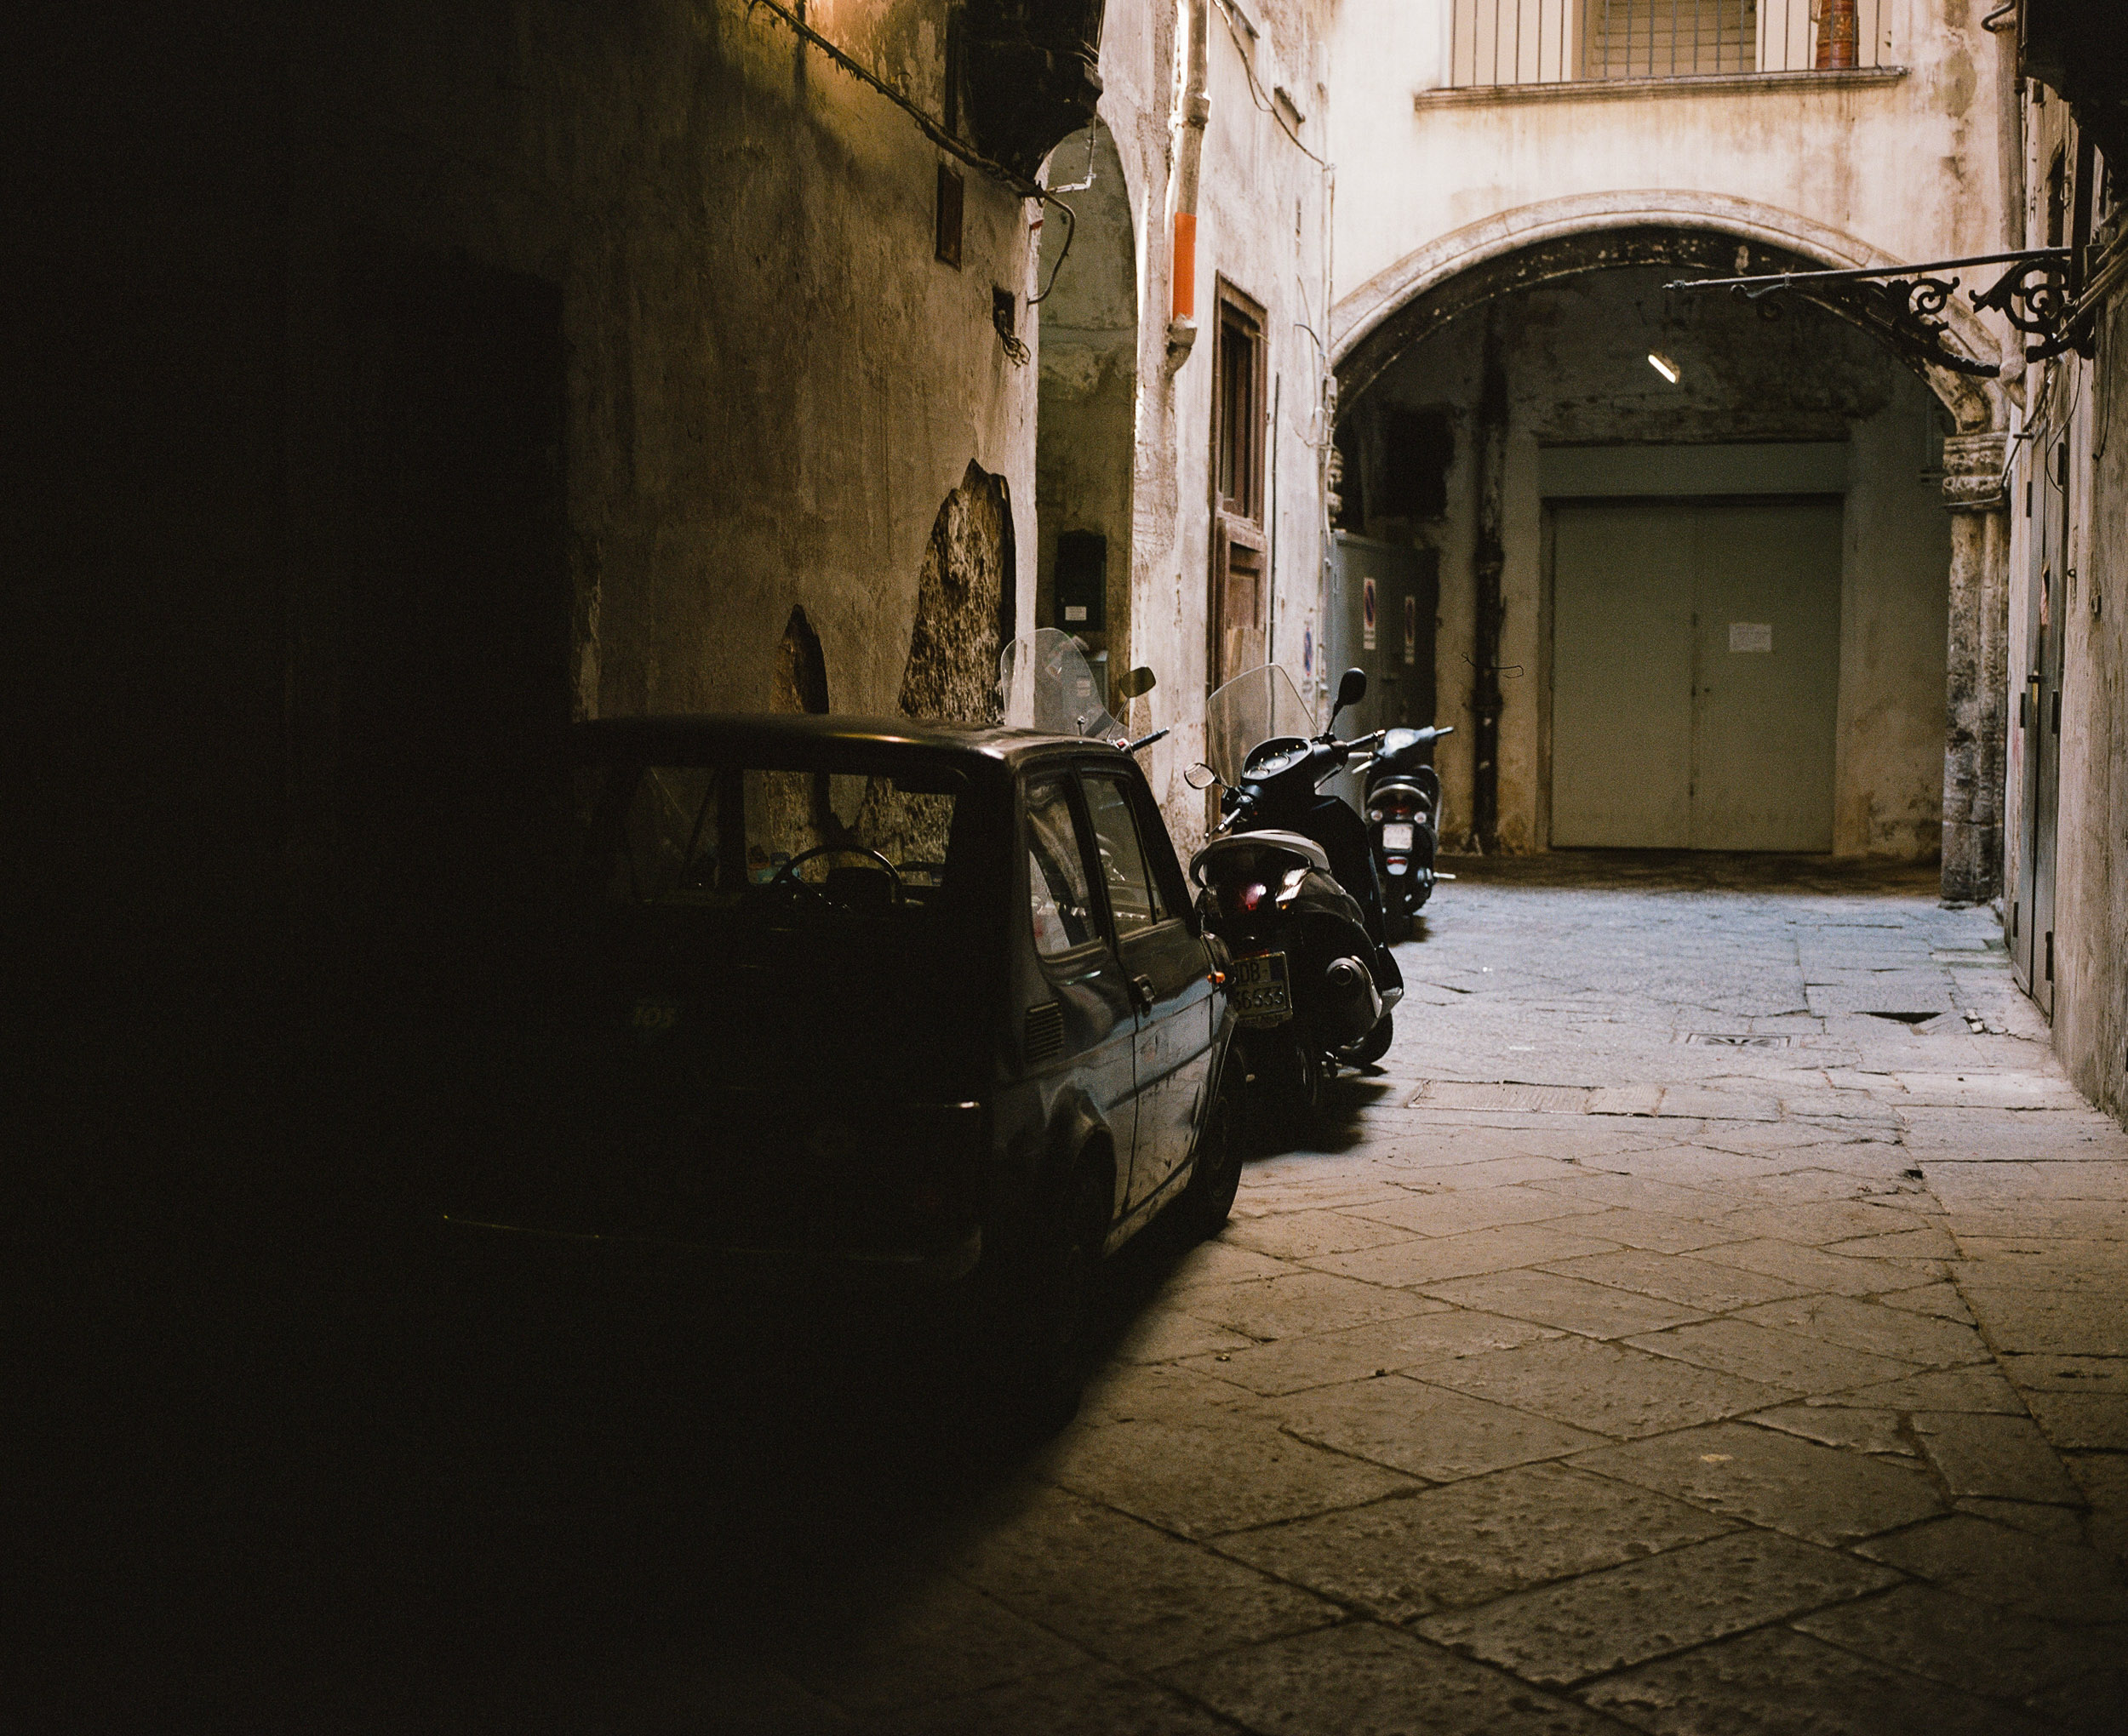 Parking courtyard in Naples, Italy with cars and scooters